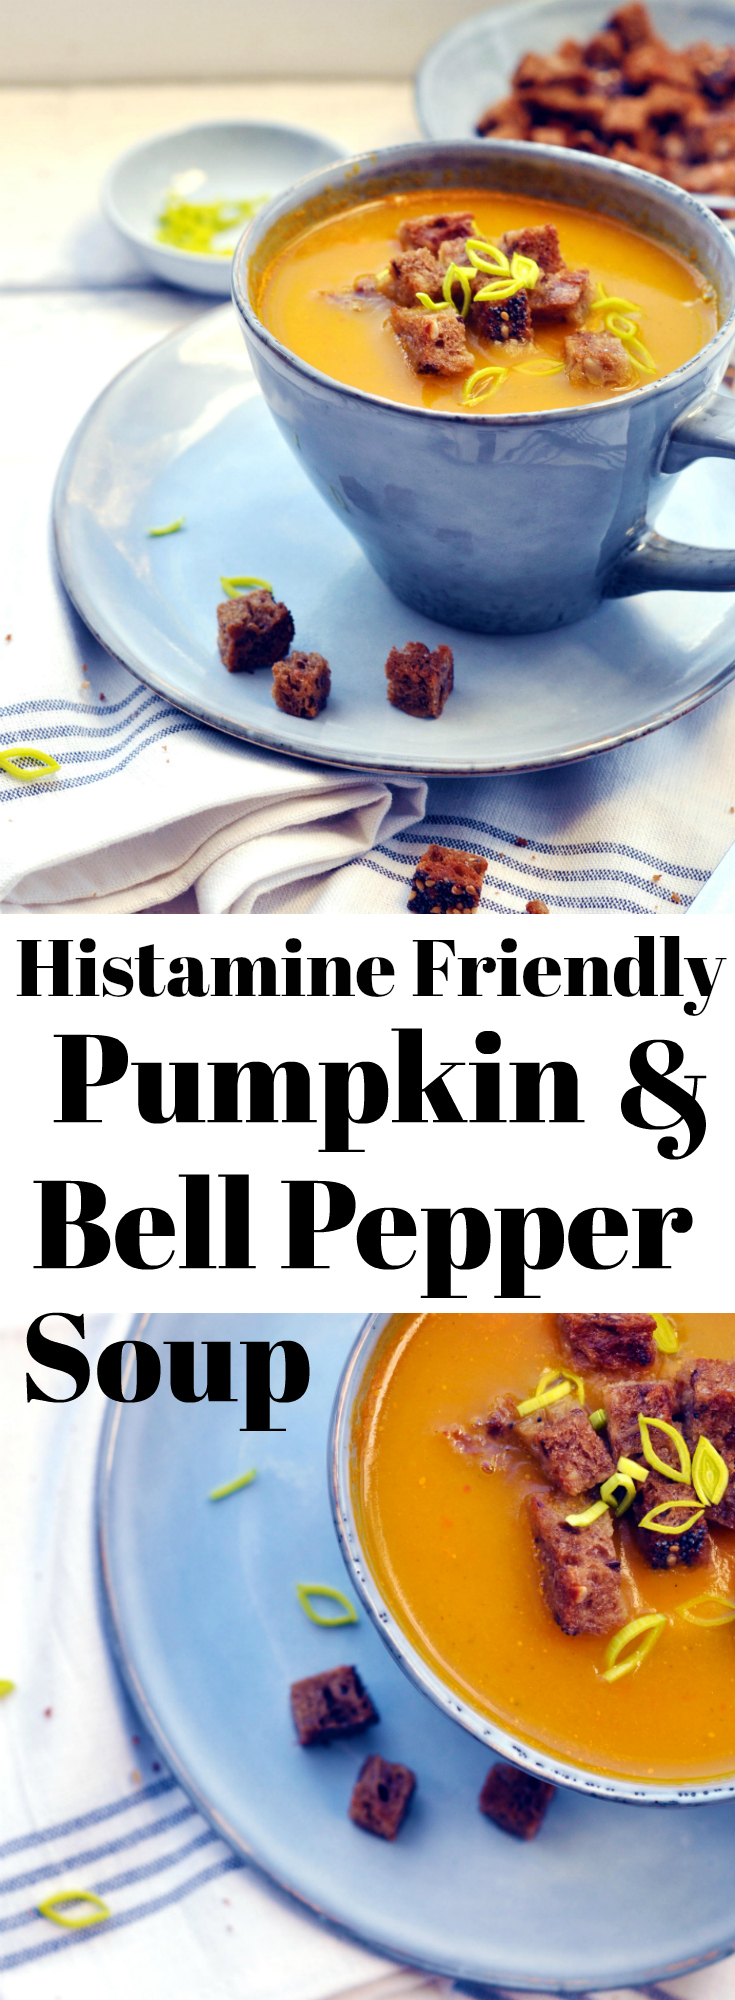 Histamine Friendly Pumpkin and Bell Pepper Soup